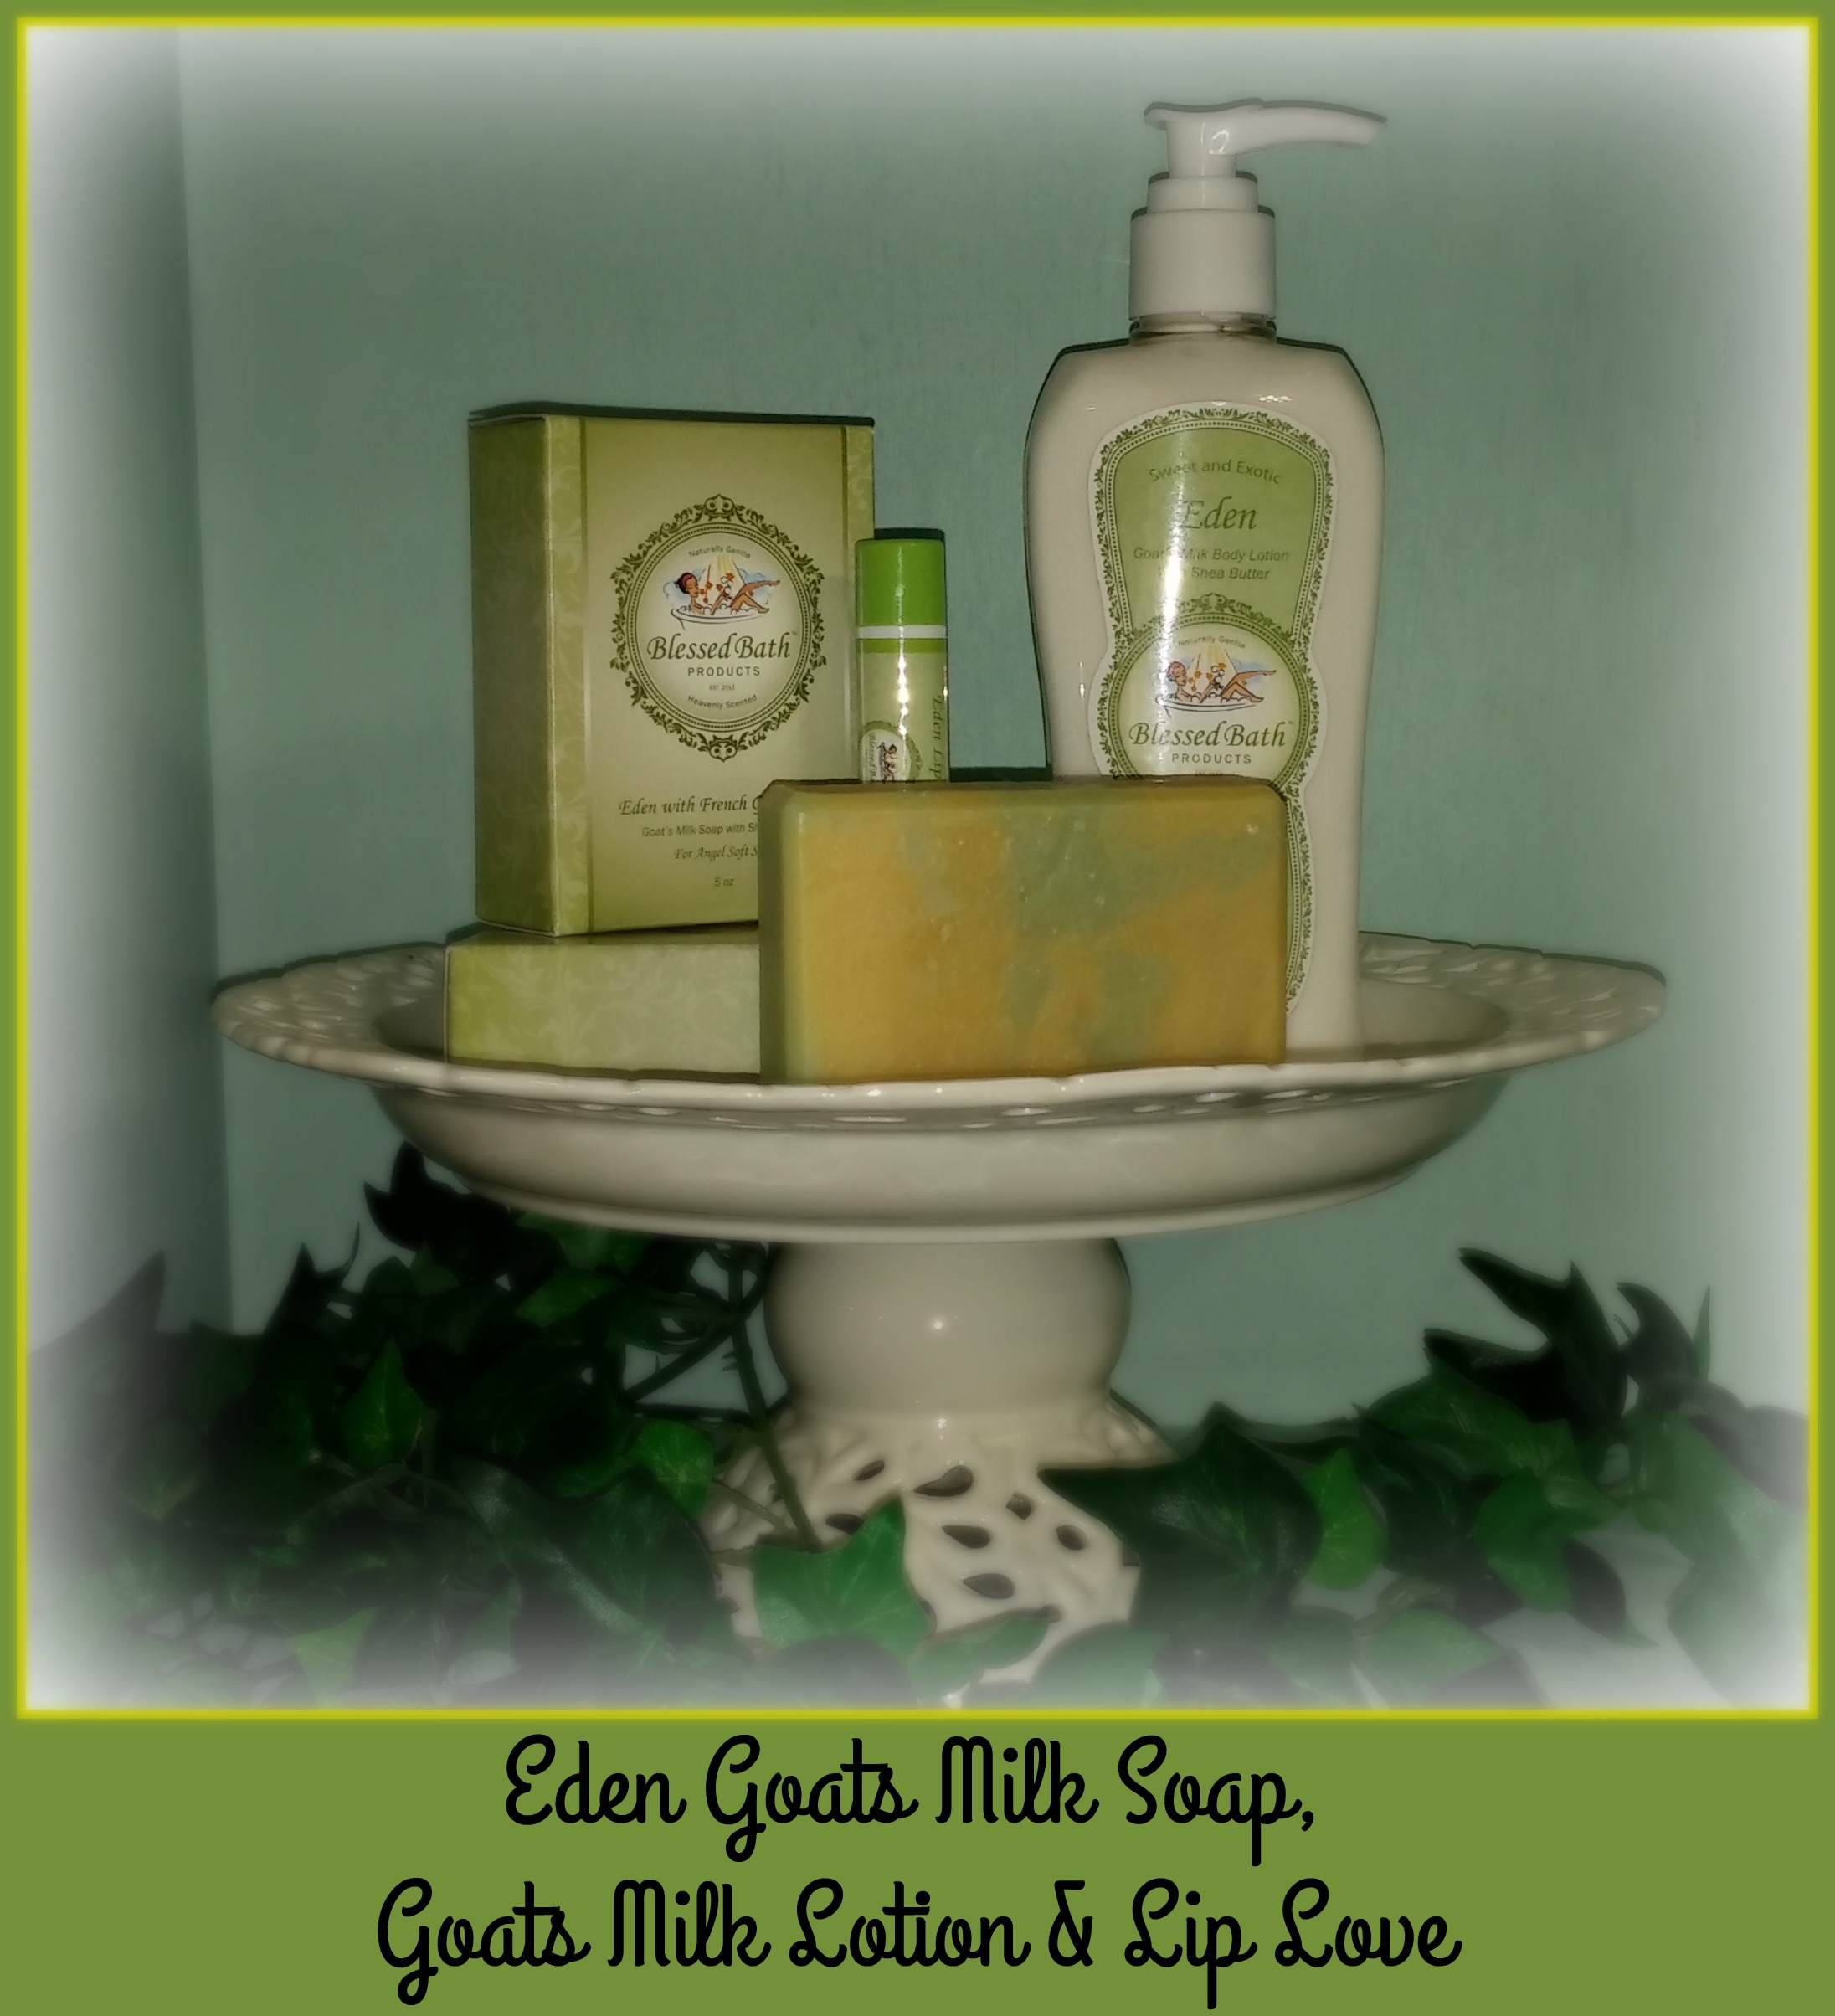 Eden Gift Set with Free Loofah Pocket